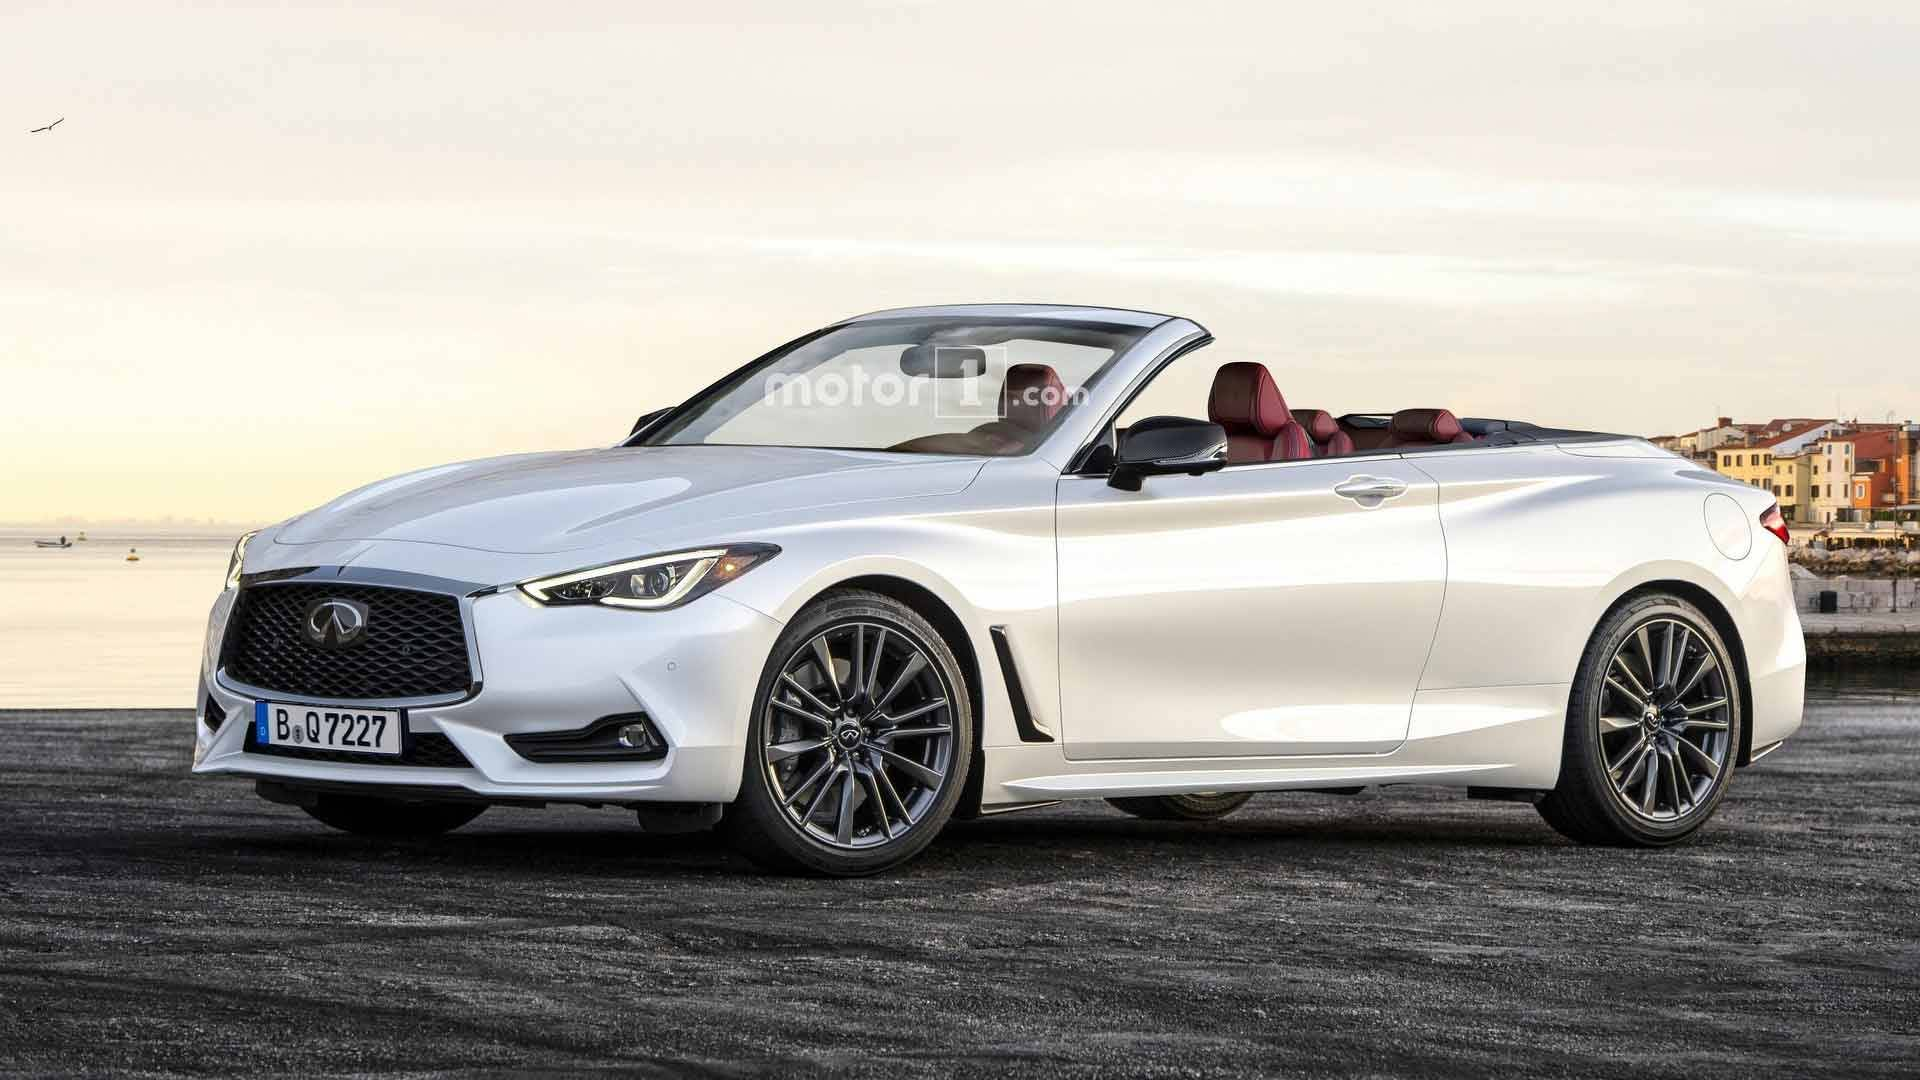 Infiniti Convertible >> Handsome Infiniti Q60 Convertible Takes Off Its Top For Rendering